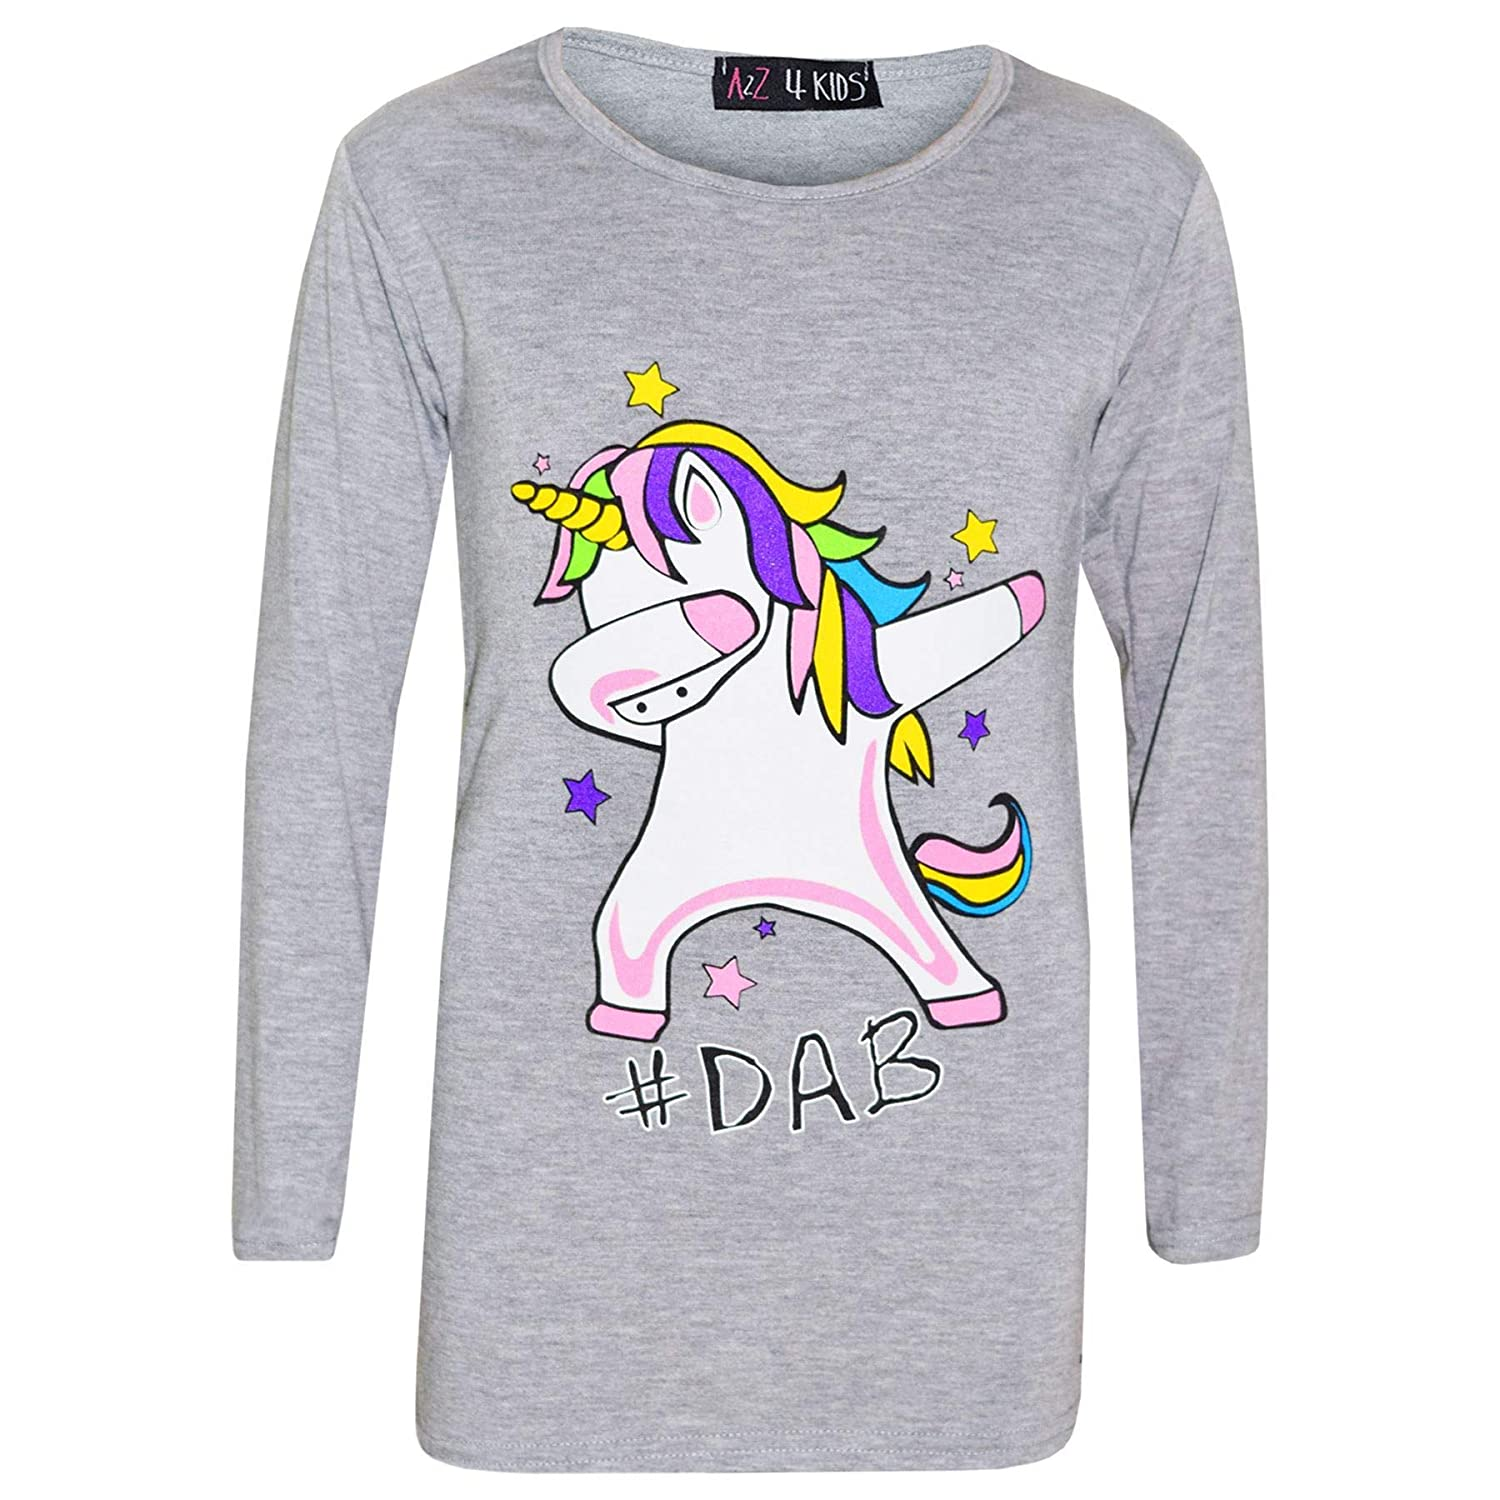 Kids Girls Rainbow Unicorn Dab Floss Grey Top /& Legging Outfit Set Age 7-13 Year